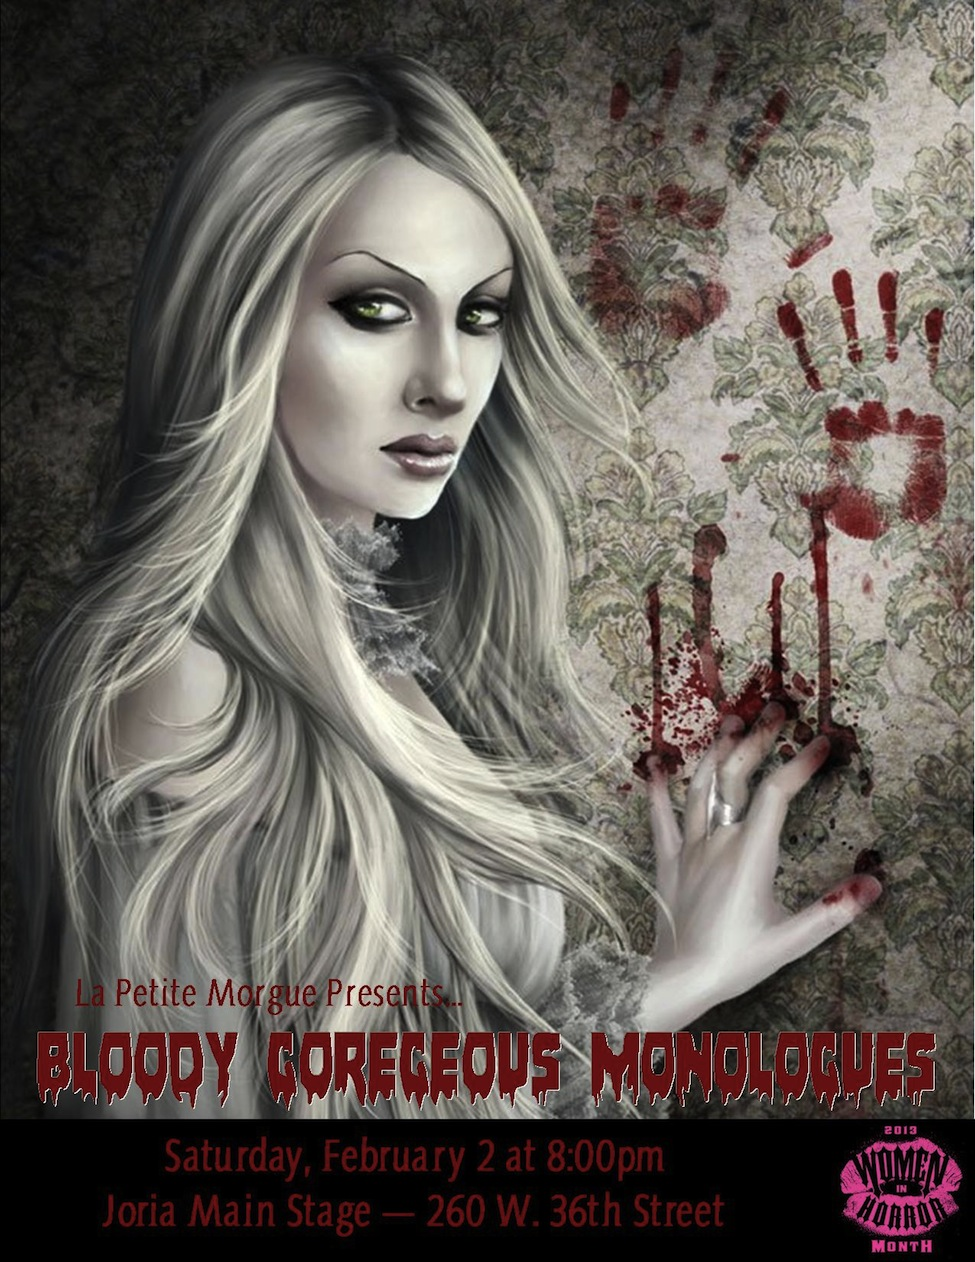 Postcard for BLOODY GORGEOUS MONOLOGUES from La Petite Morgue.